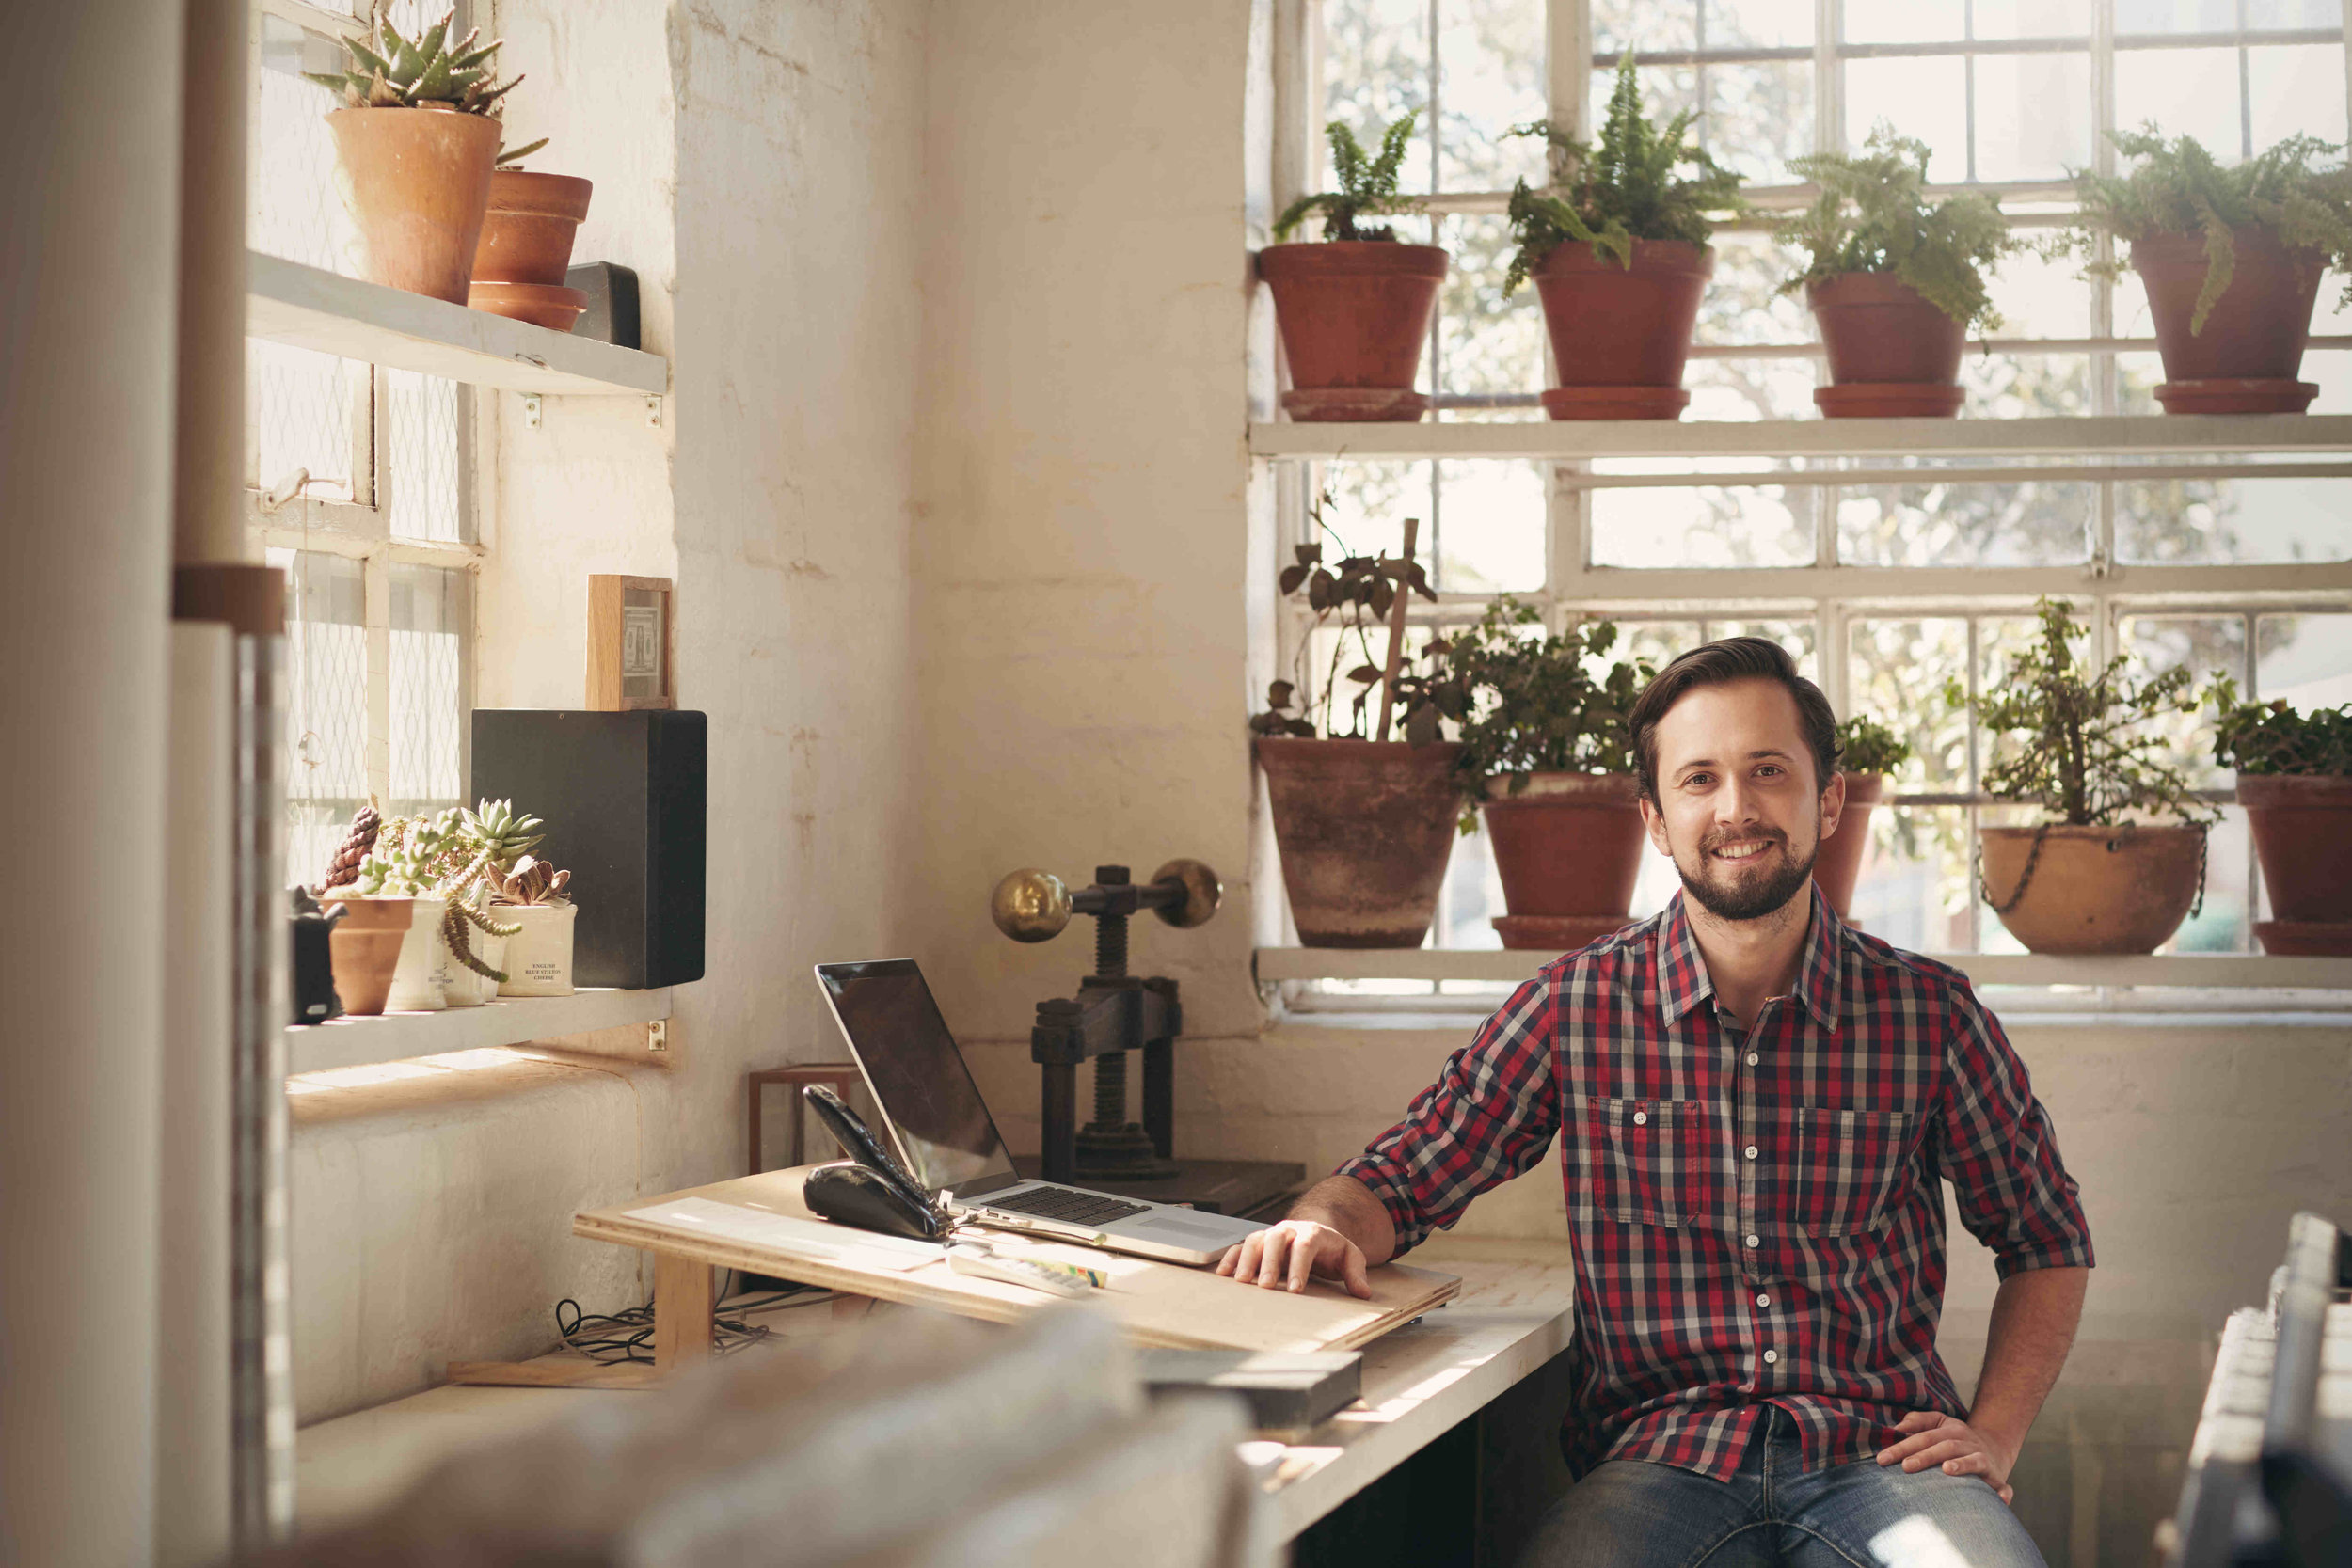 small-business-owner-white-male-office-with-plants.jpg